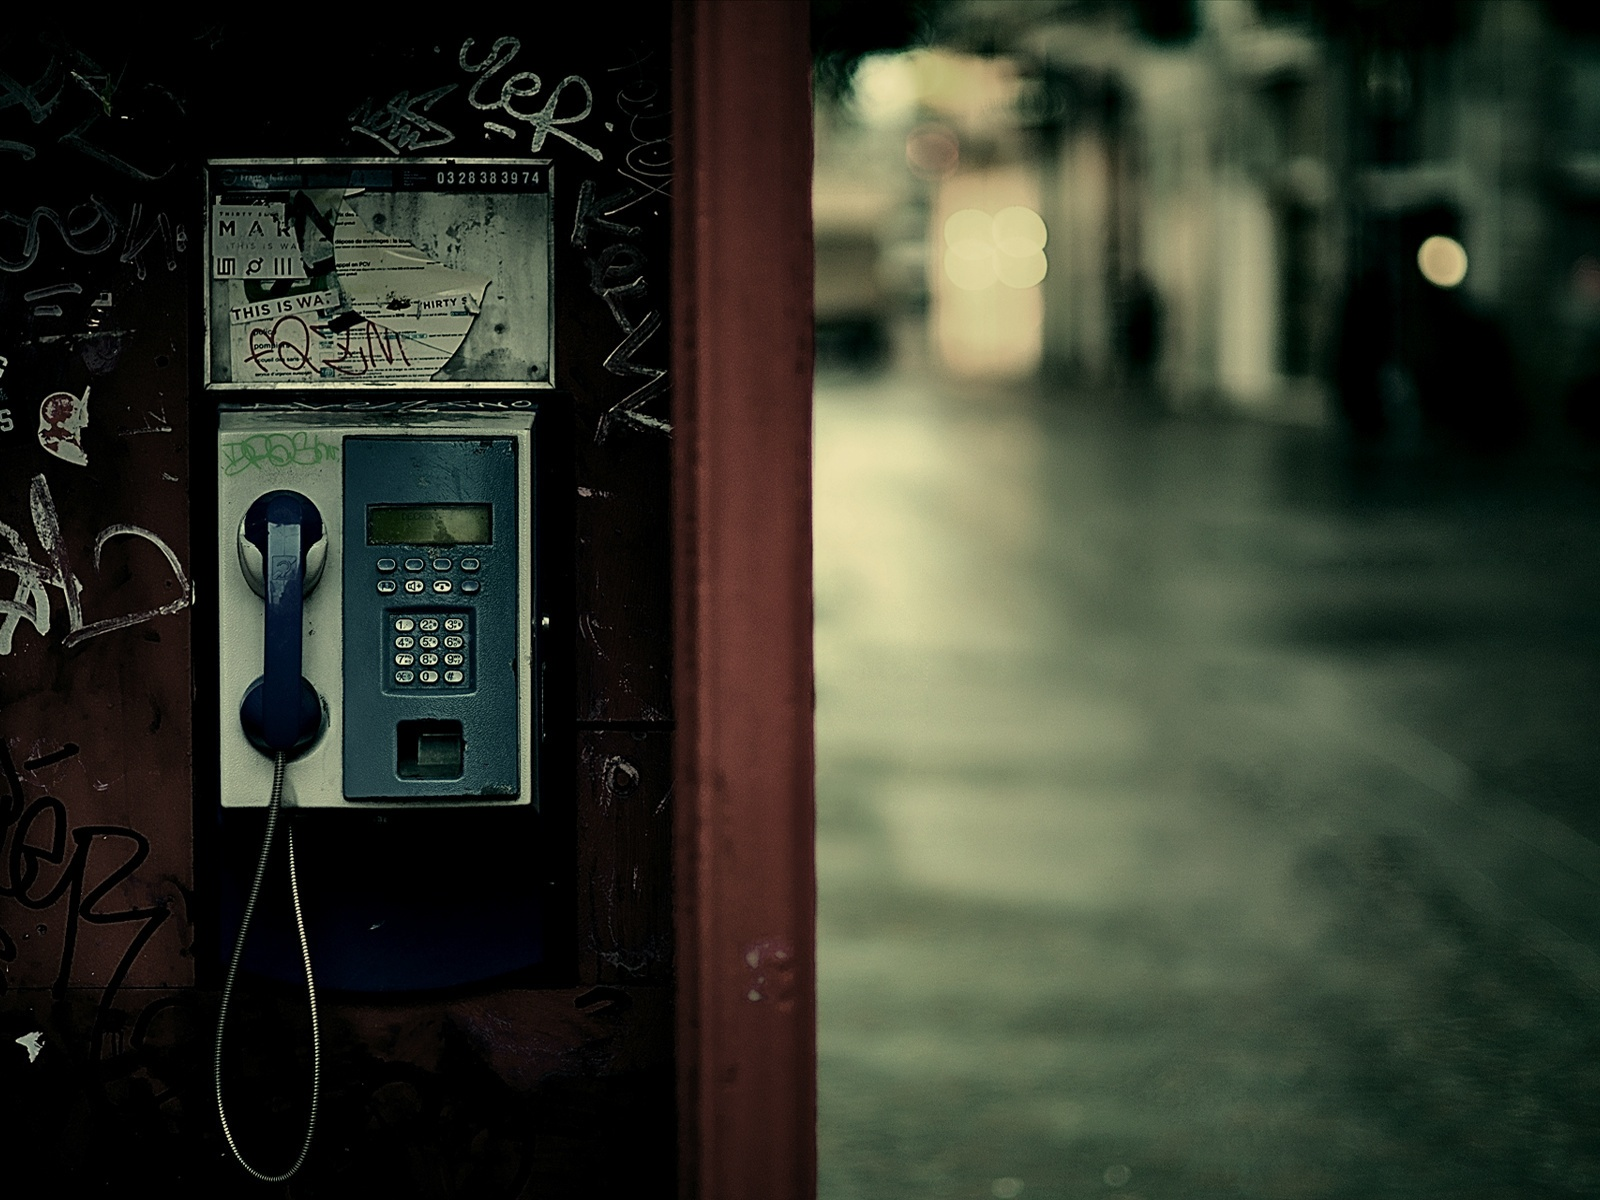 Payphone street lights wallpaper - 1600x1200